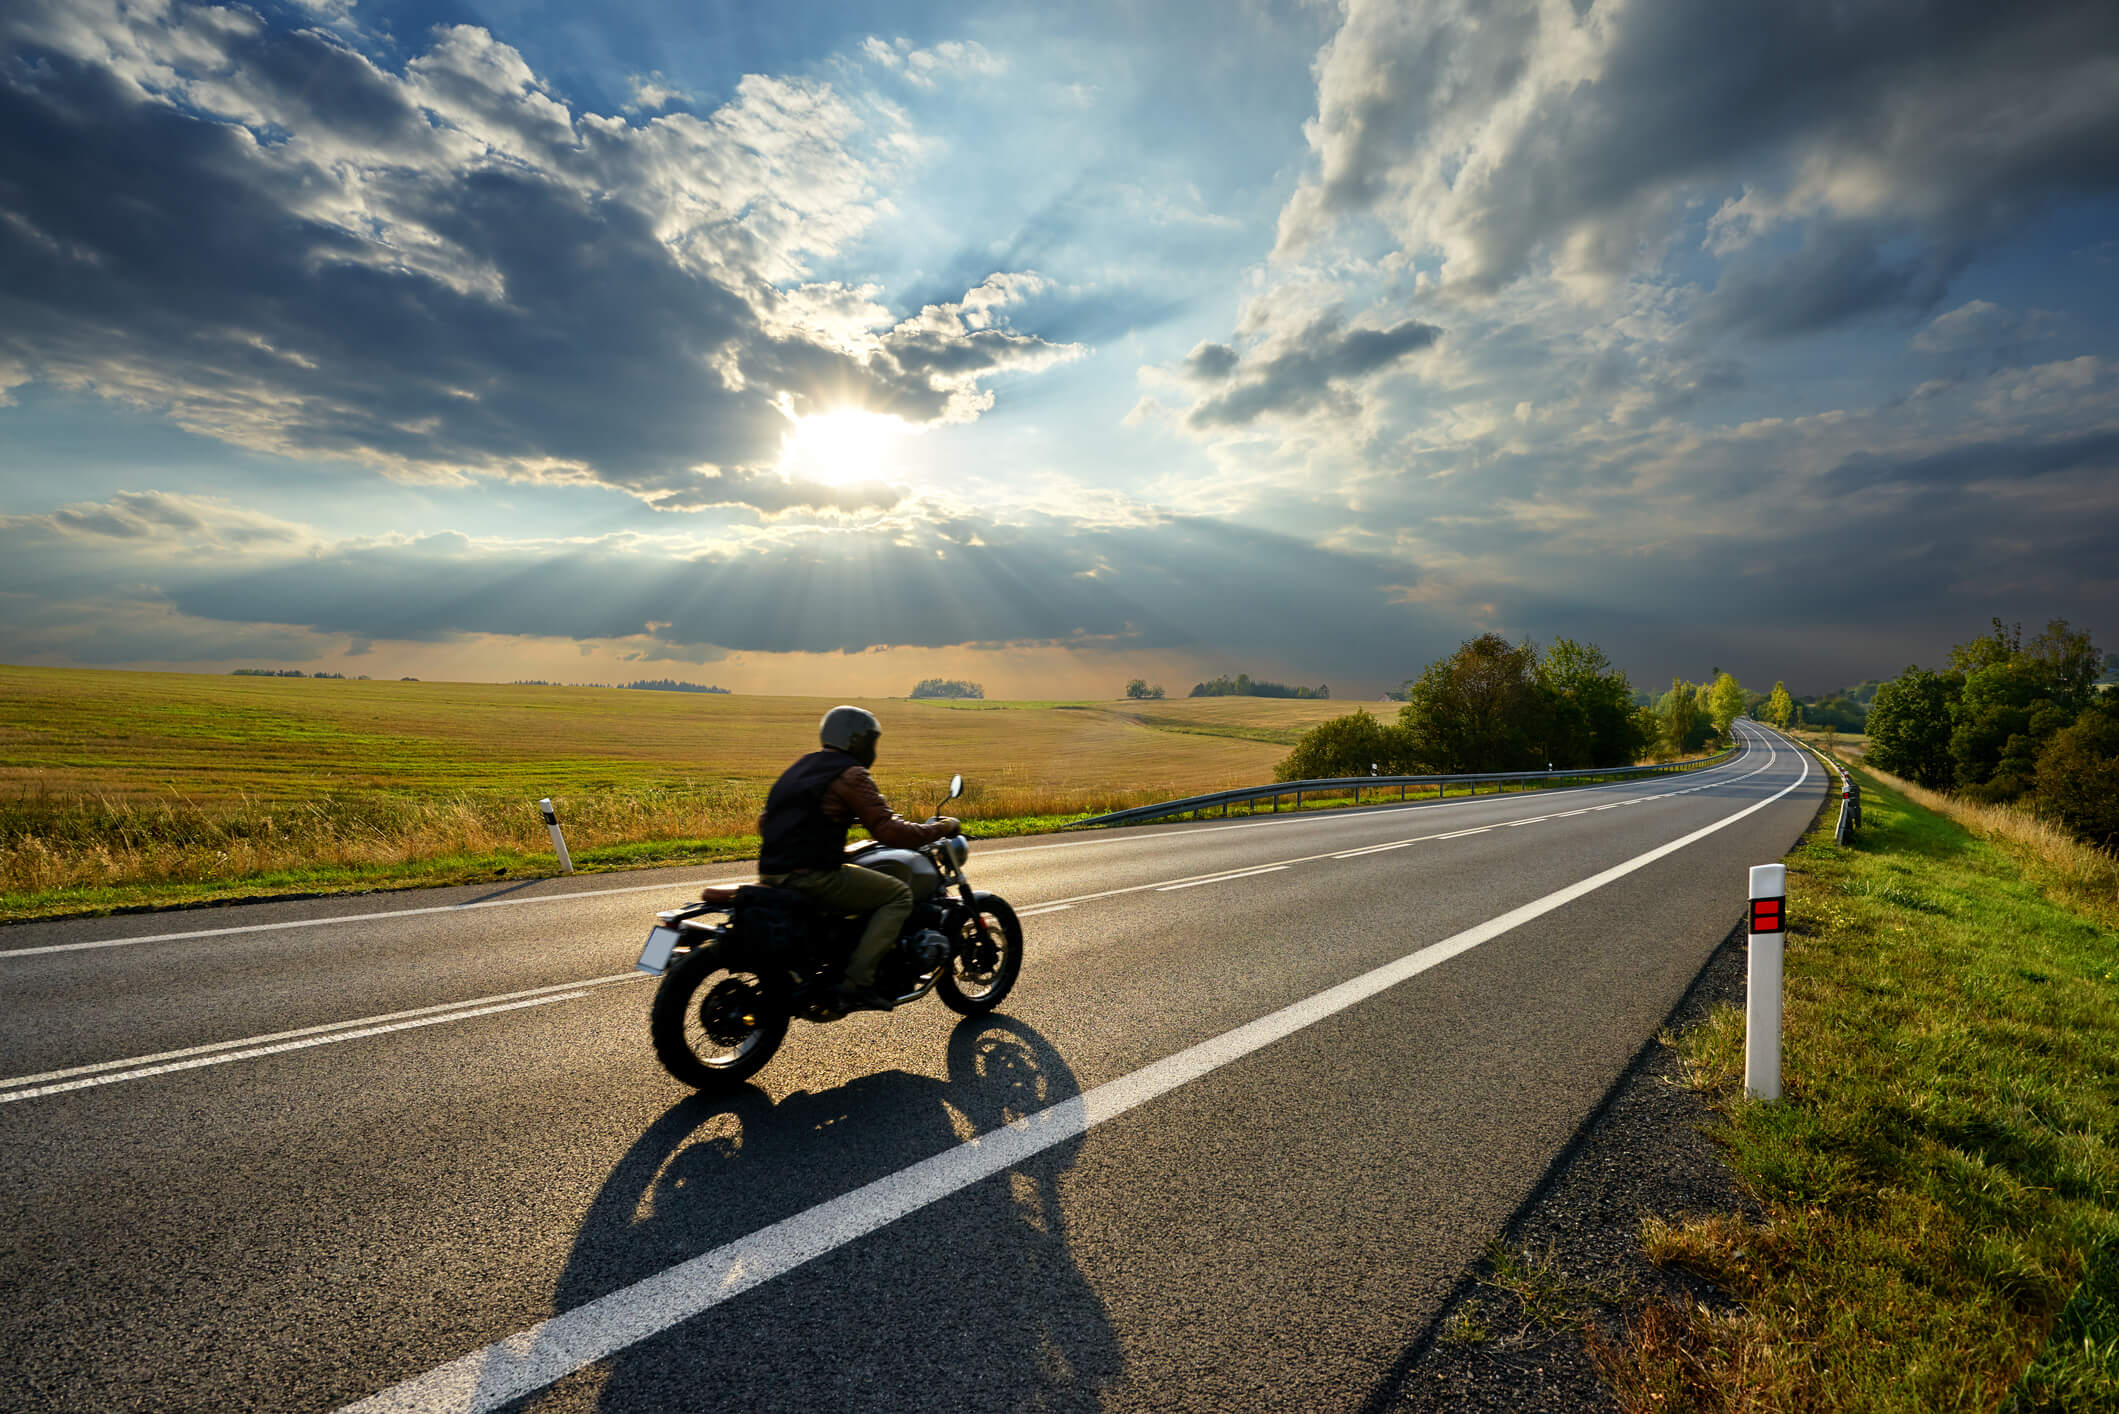 Cummings Injury Law discusses how motorcycles can stay safe on the roads.